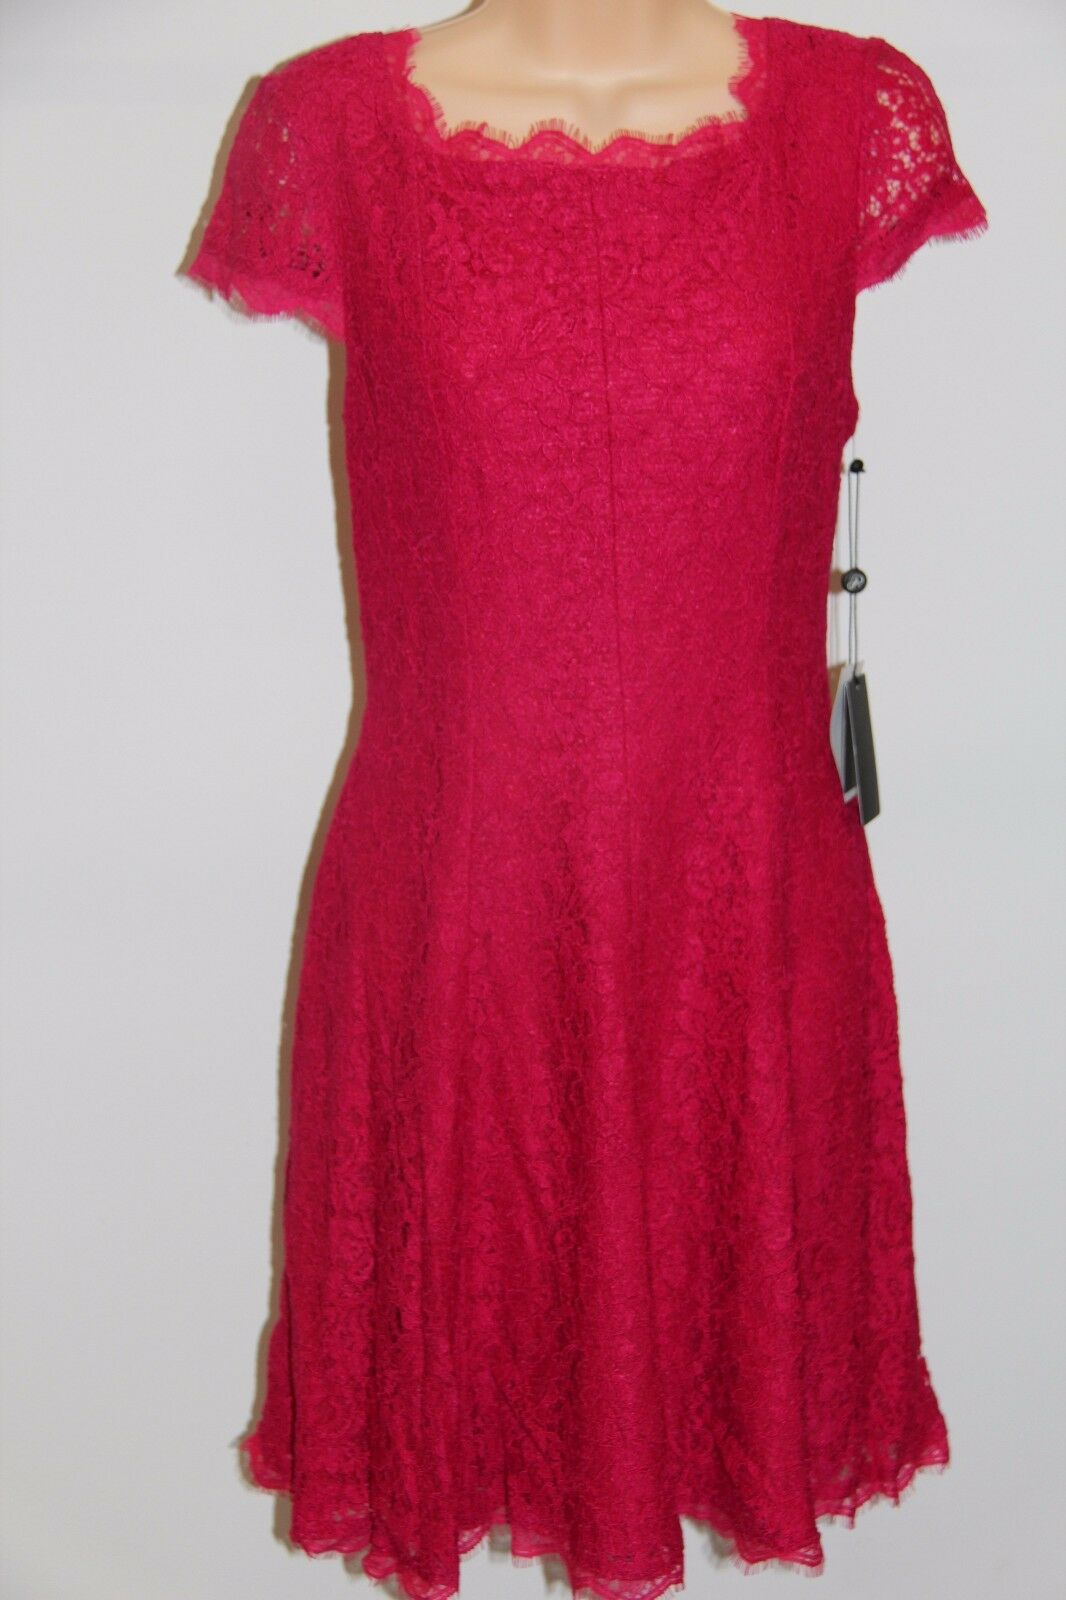 NWT Adrianna Papell Cap Sleeve Fit & Flare Dress Größe 10P Lip Lace